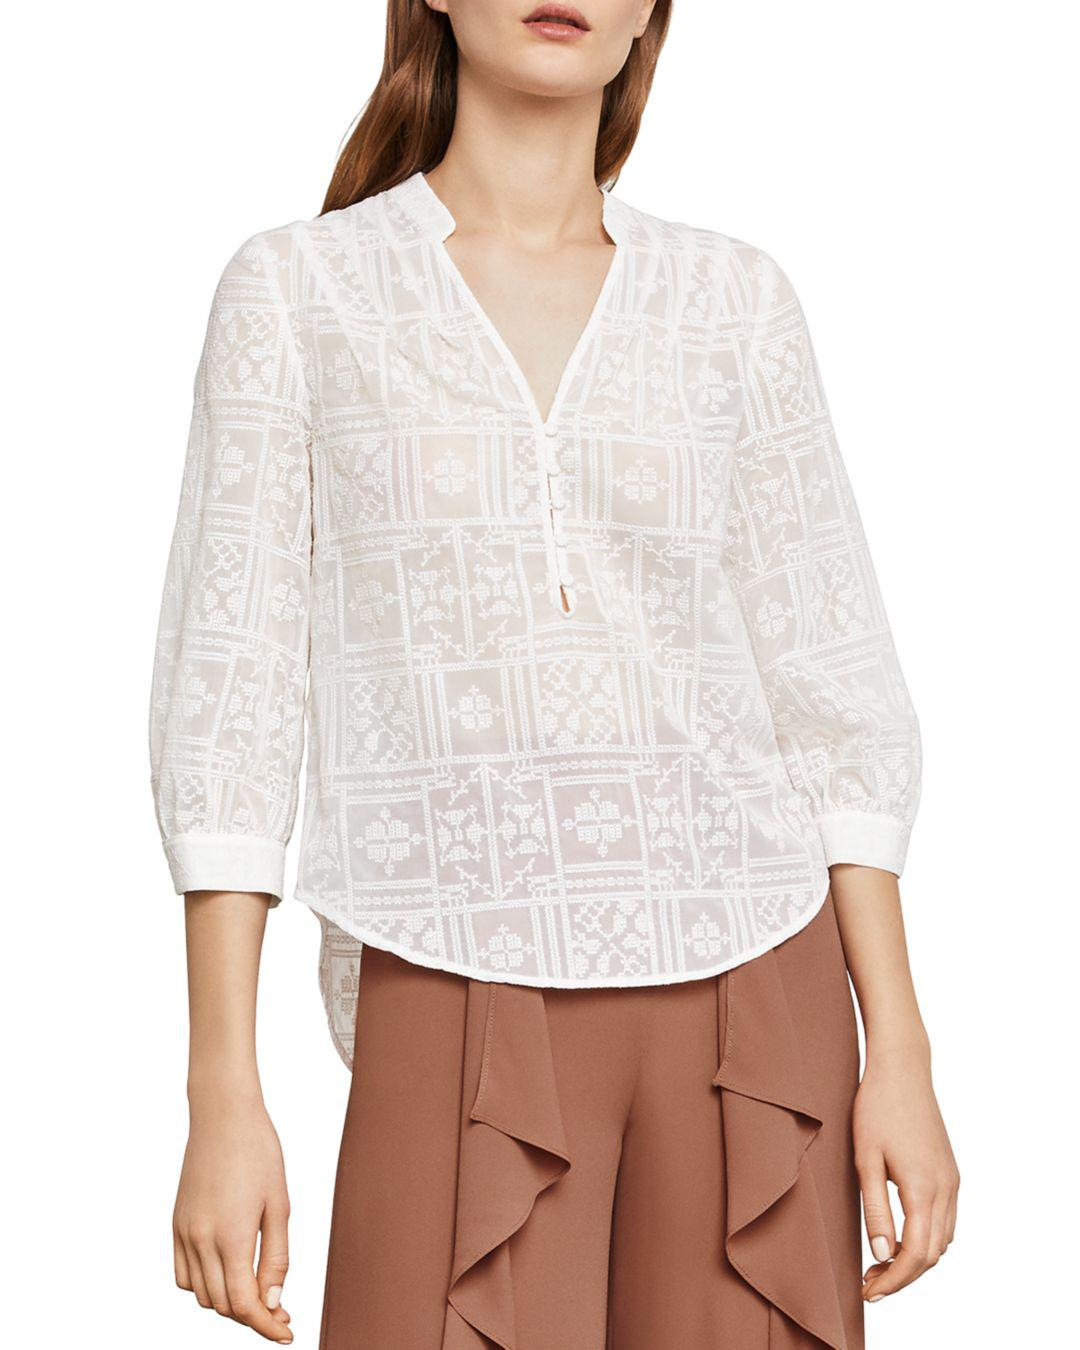 4f9d45019aa6b Bcbgmaxazria Kalie Embroidered Top in White - Lyst